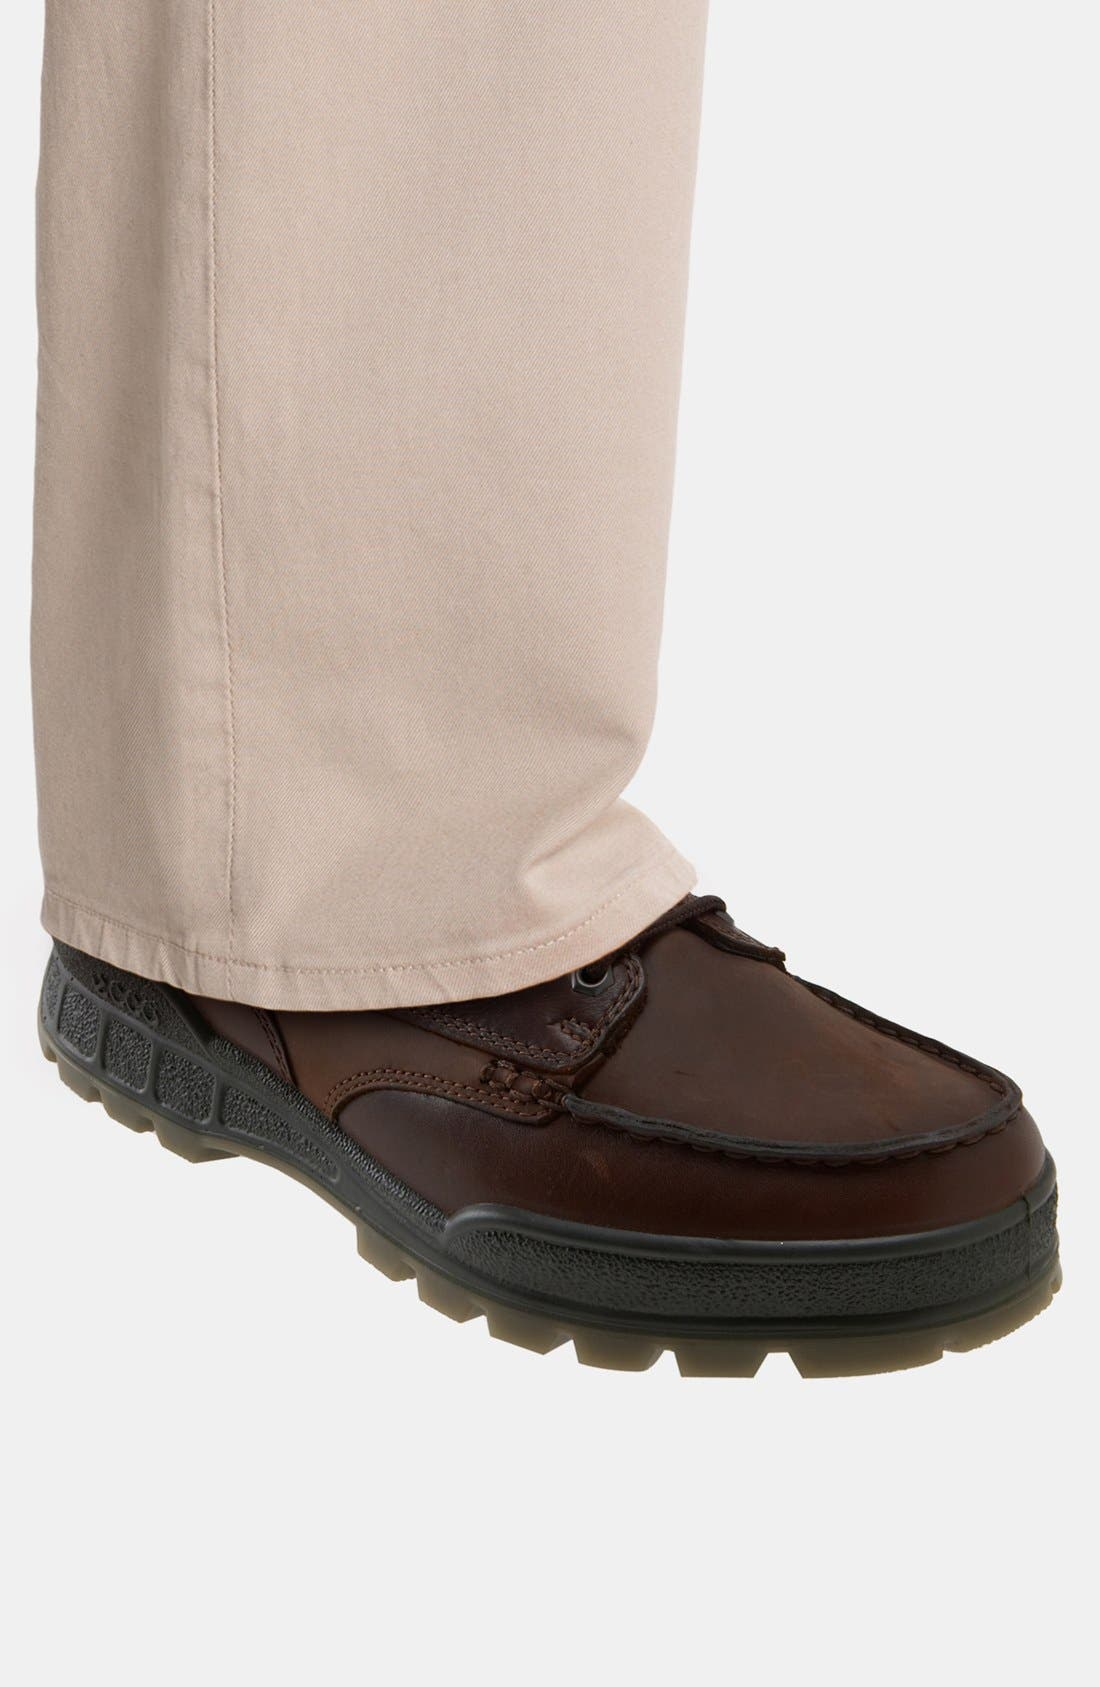 Track II High Boot,                             Alternate thumbnail 9, color,                             Bison